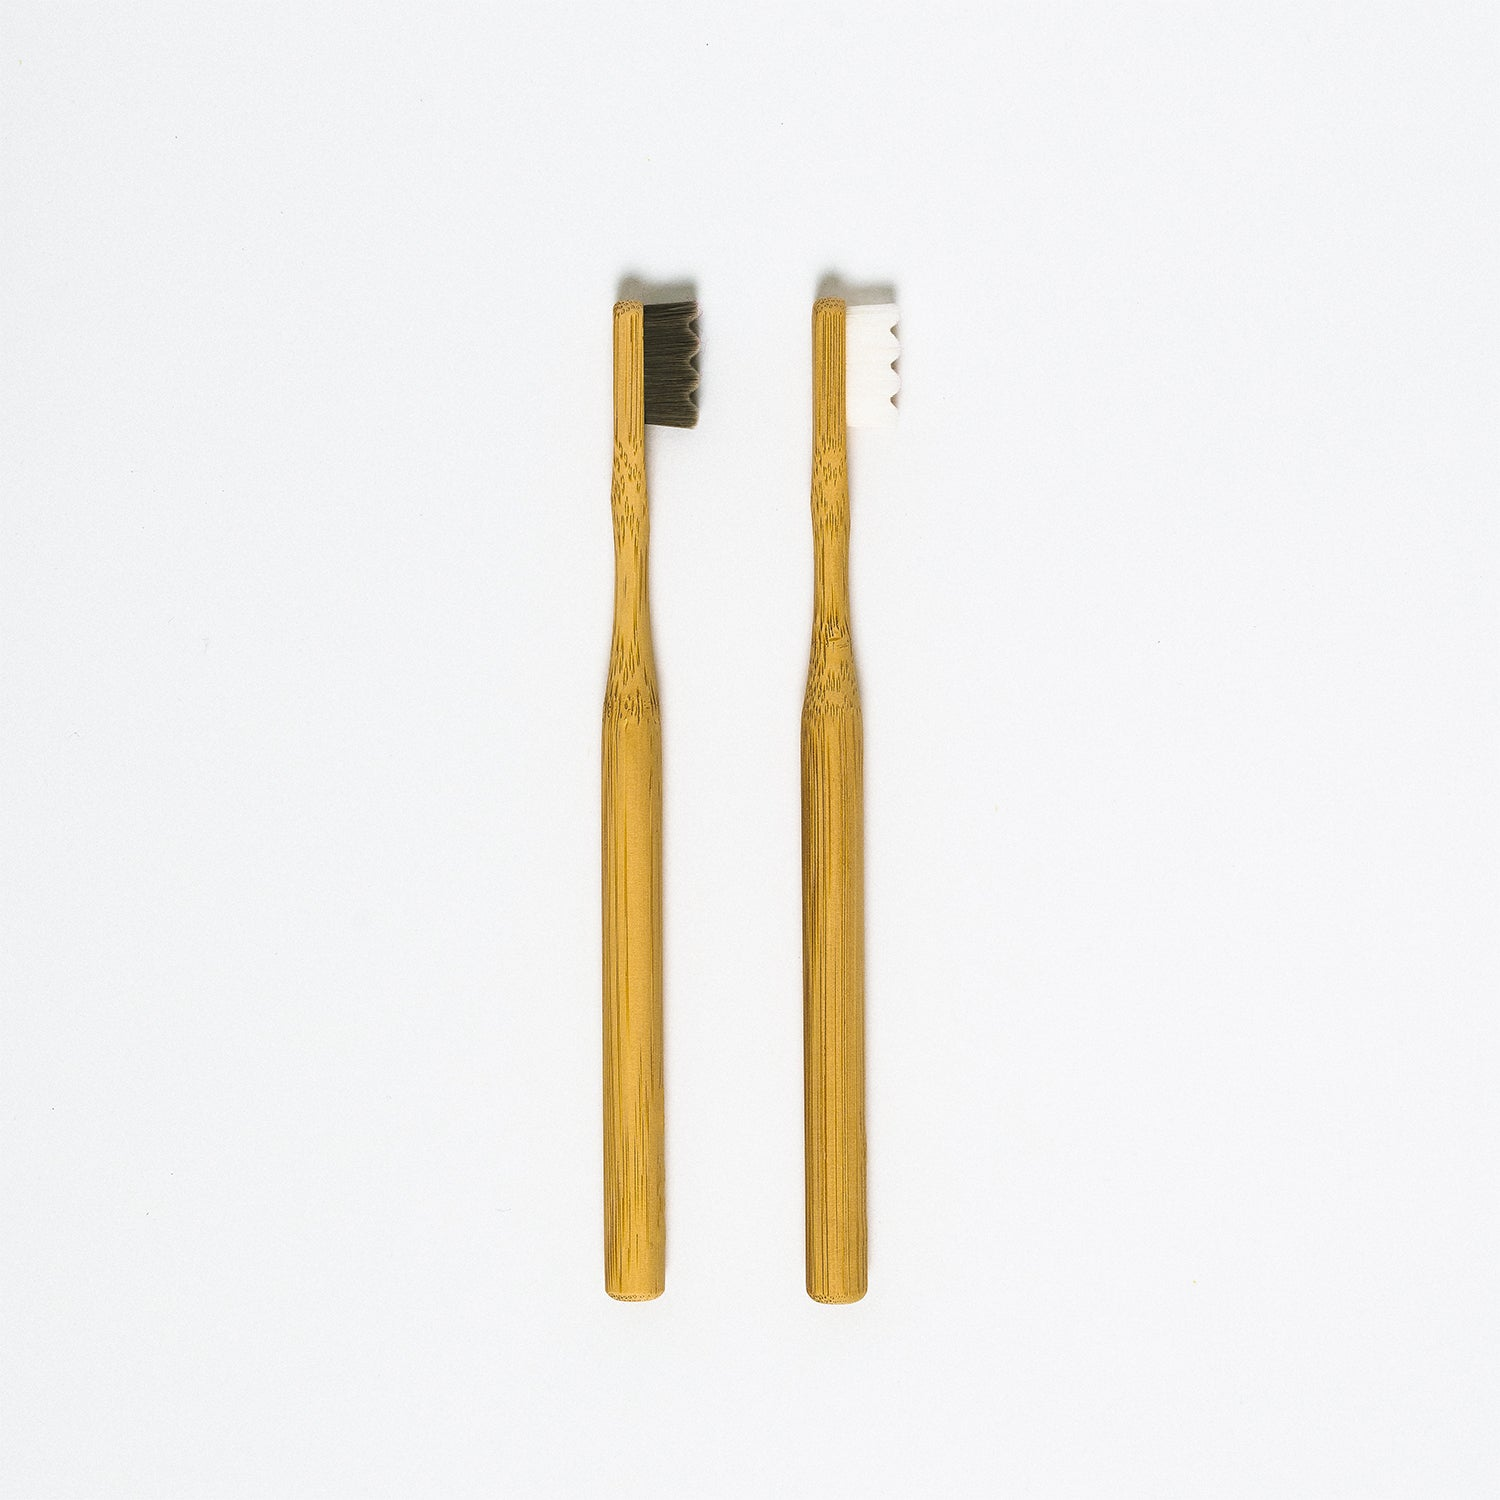 A pair of sustainable bamboo toothbrushes